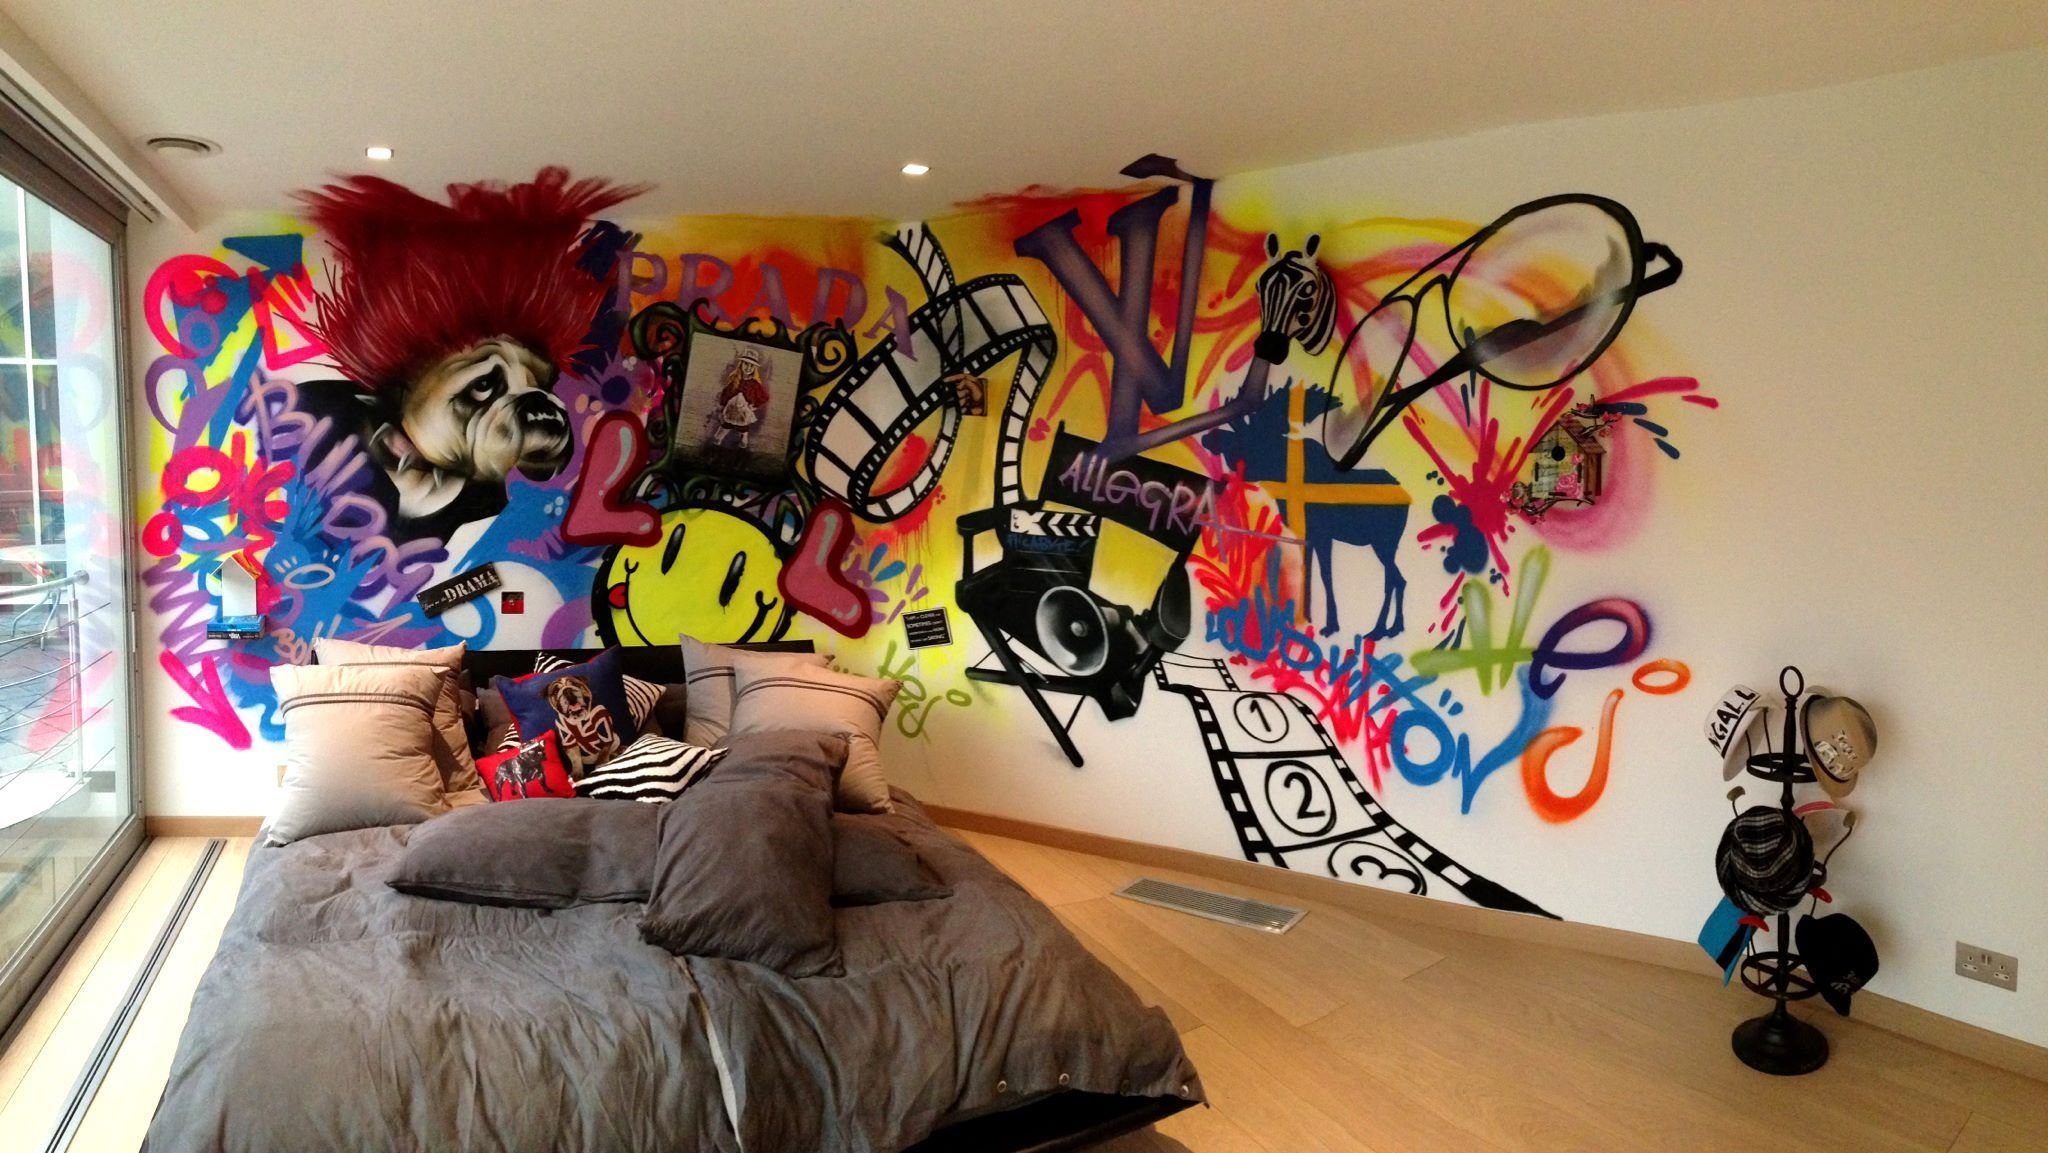 Awesome Graffiti Bedroom High Quality Picture With Wooden Floor Dã£Cor Idea